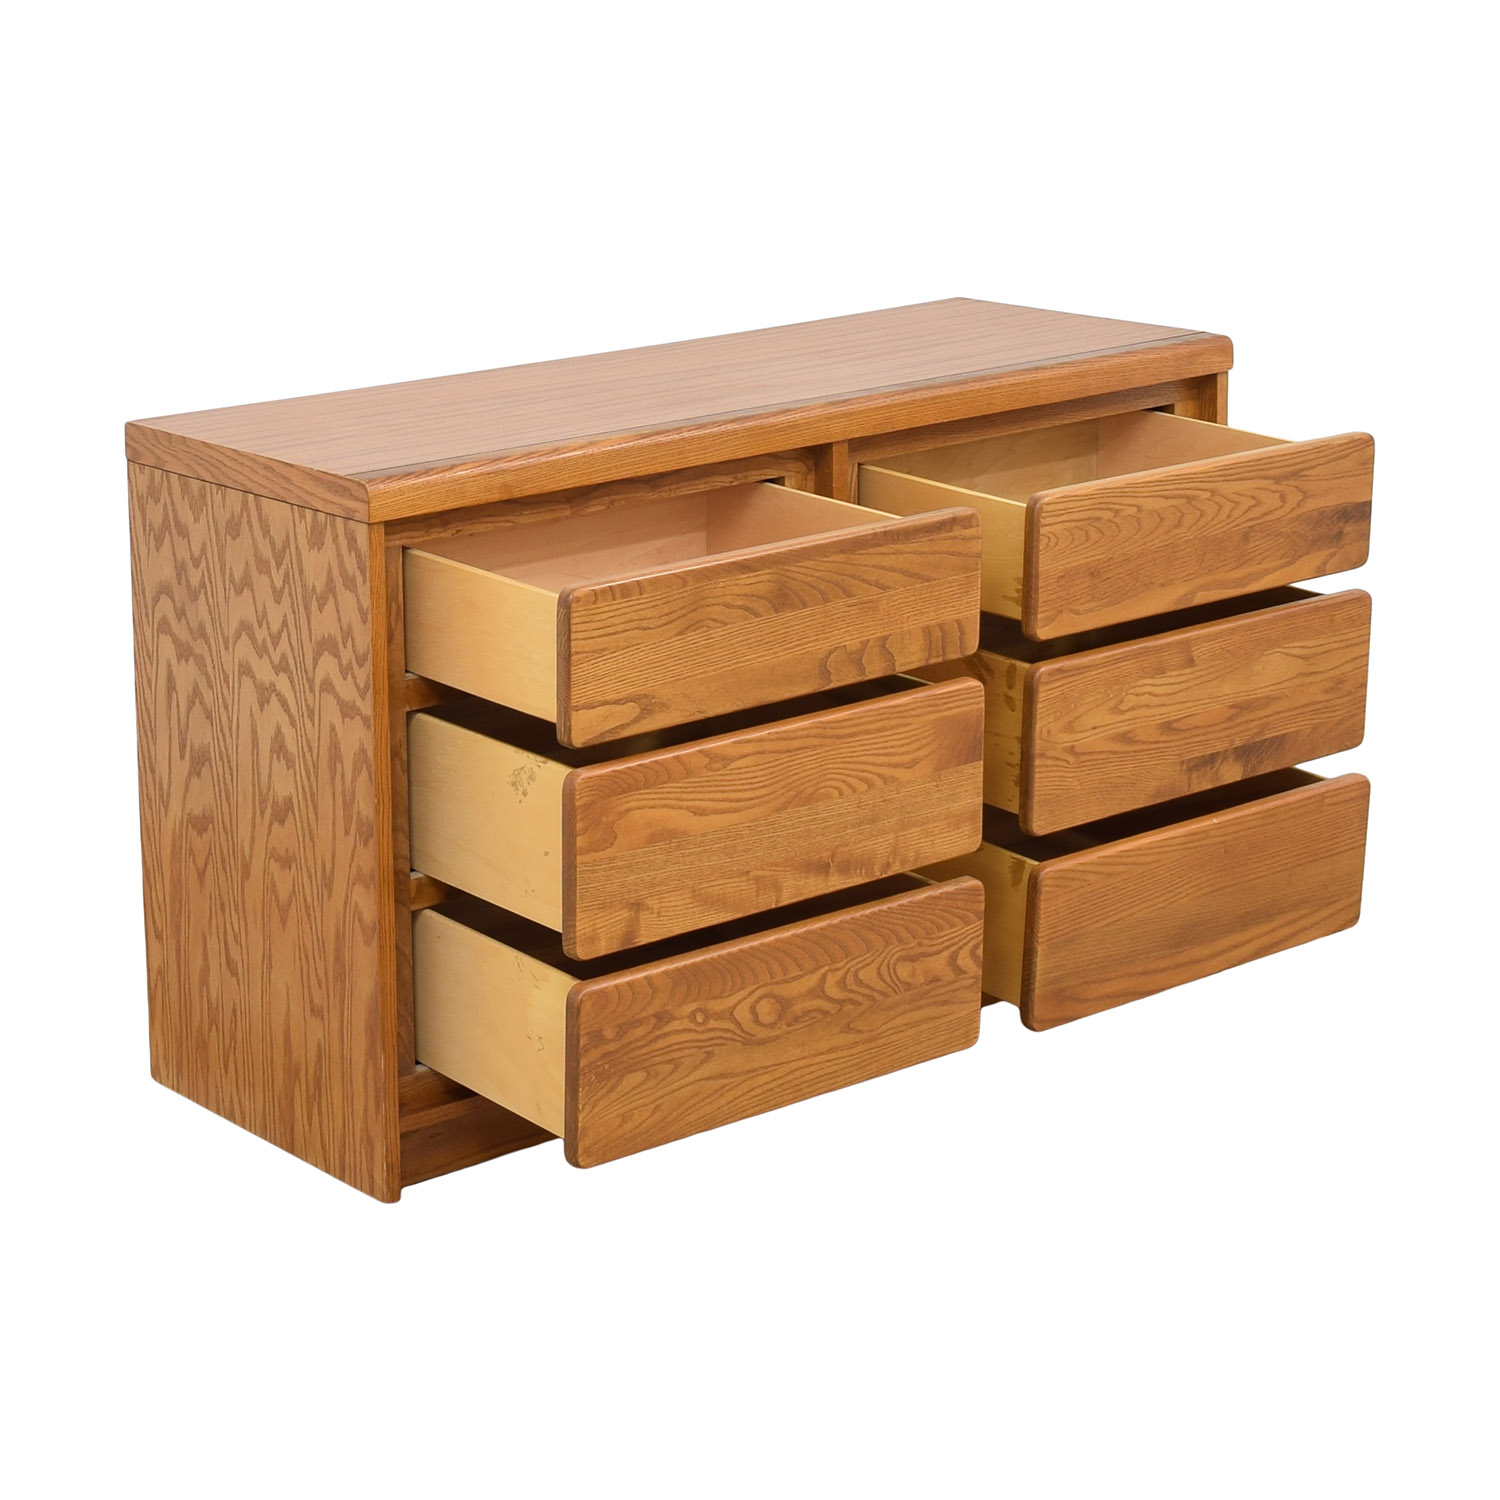 Childcraft Double Dresser sale